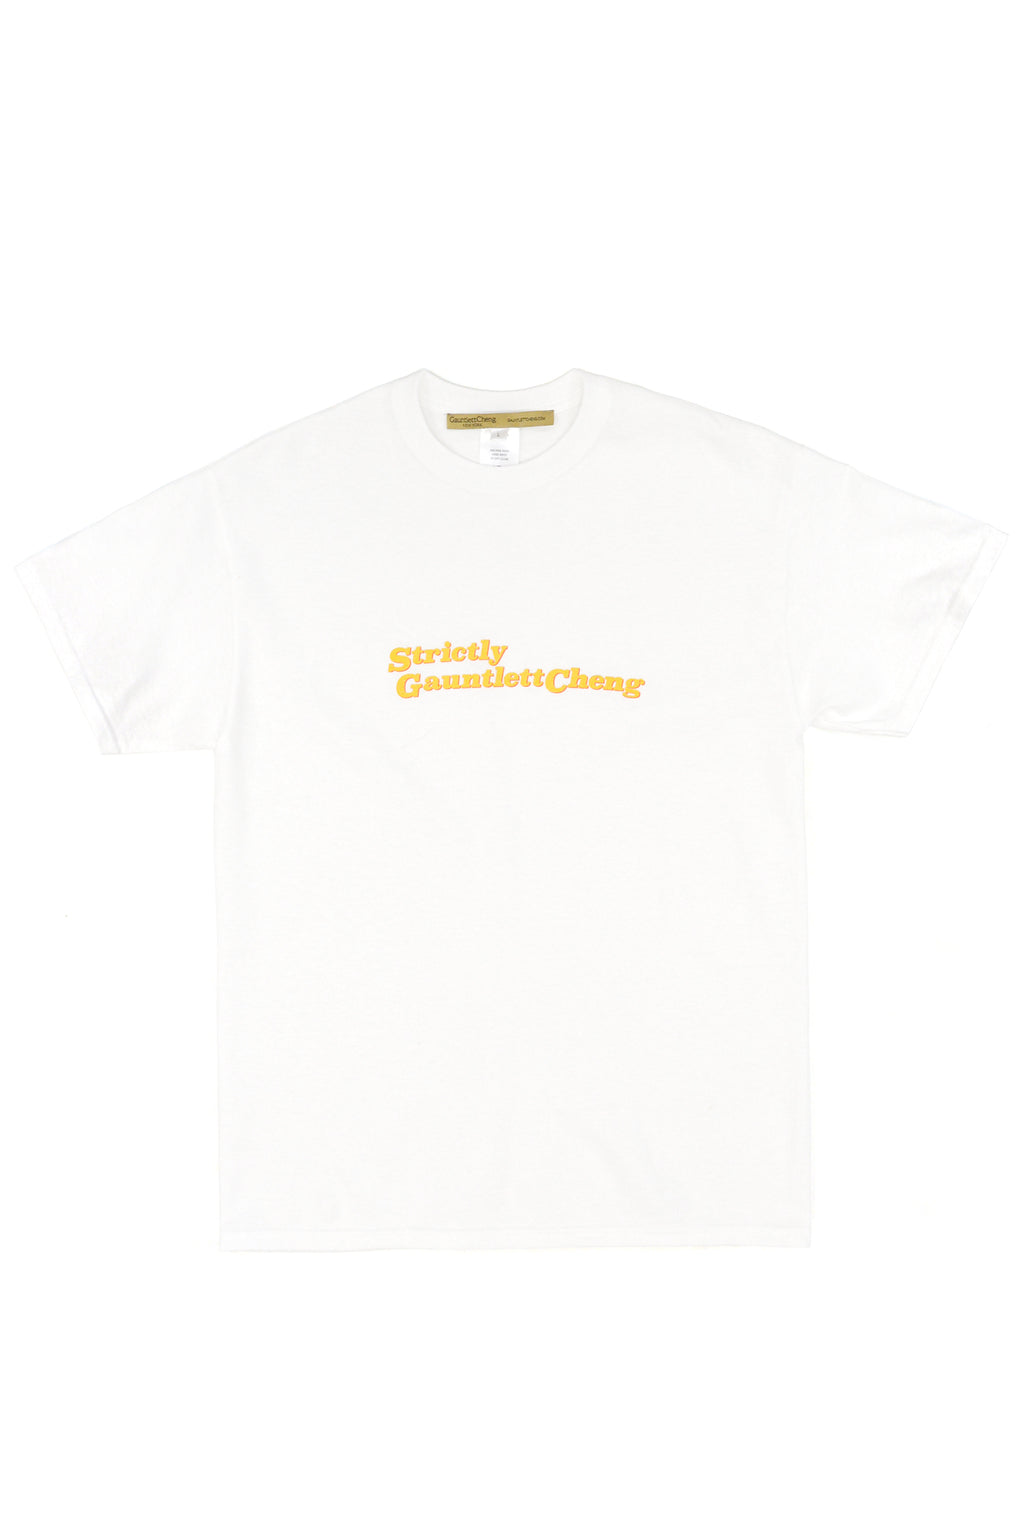 Strictly Gauntlett Cheng Tee